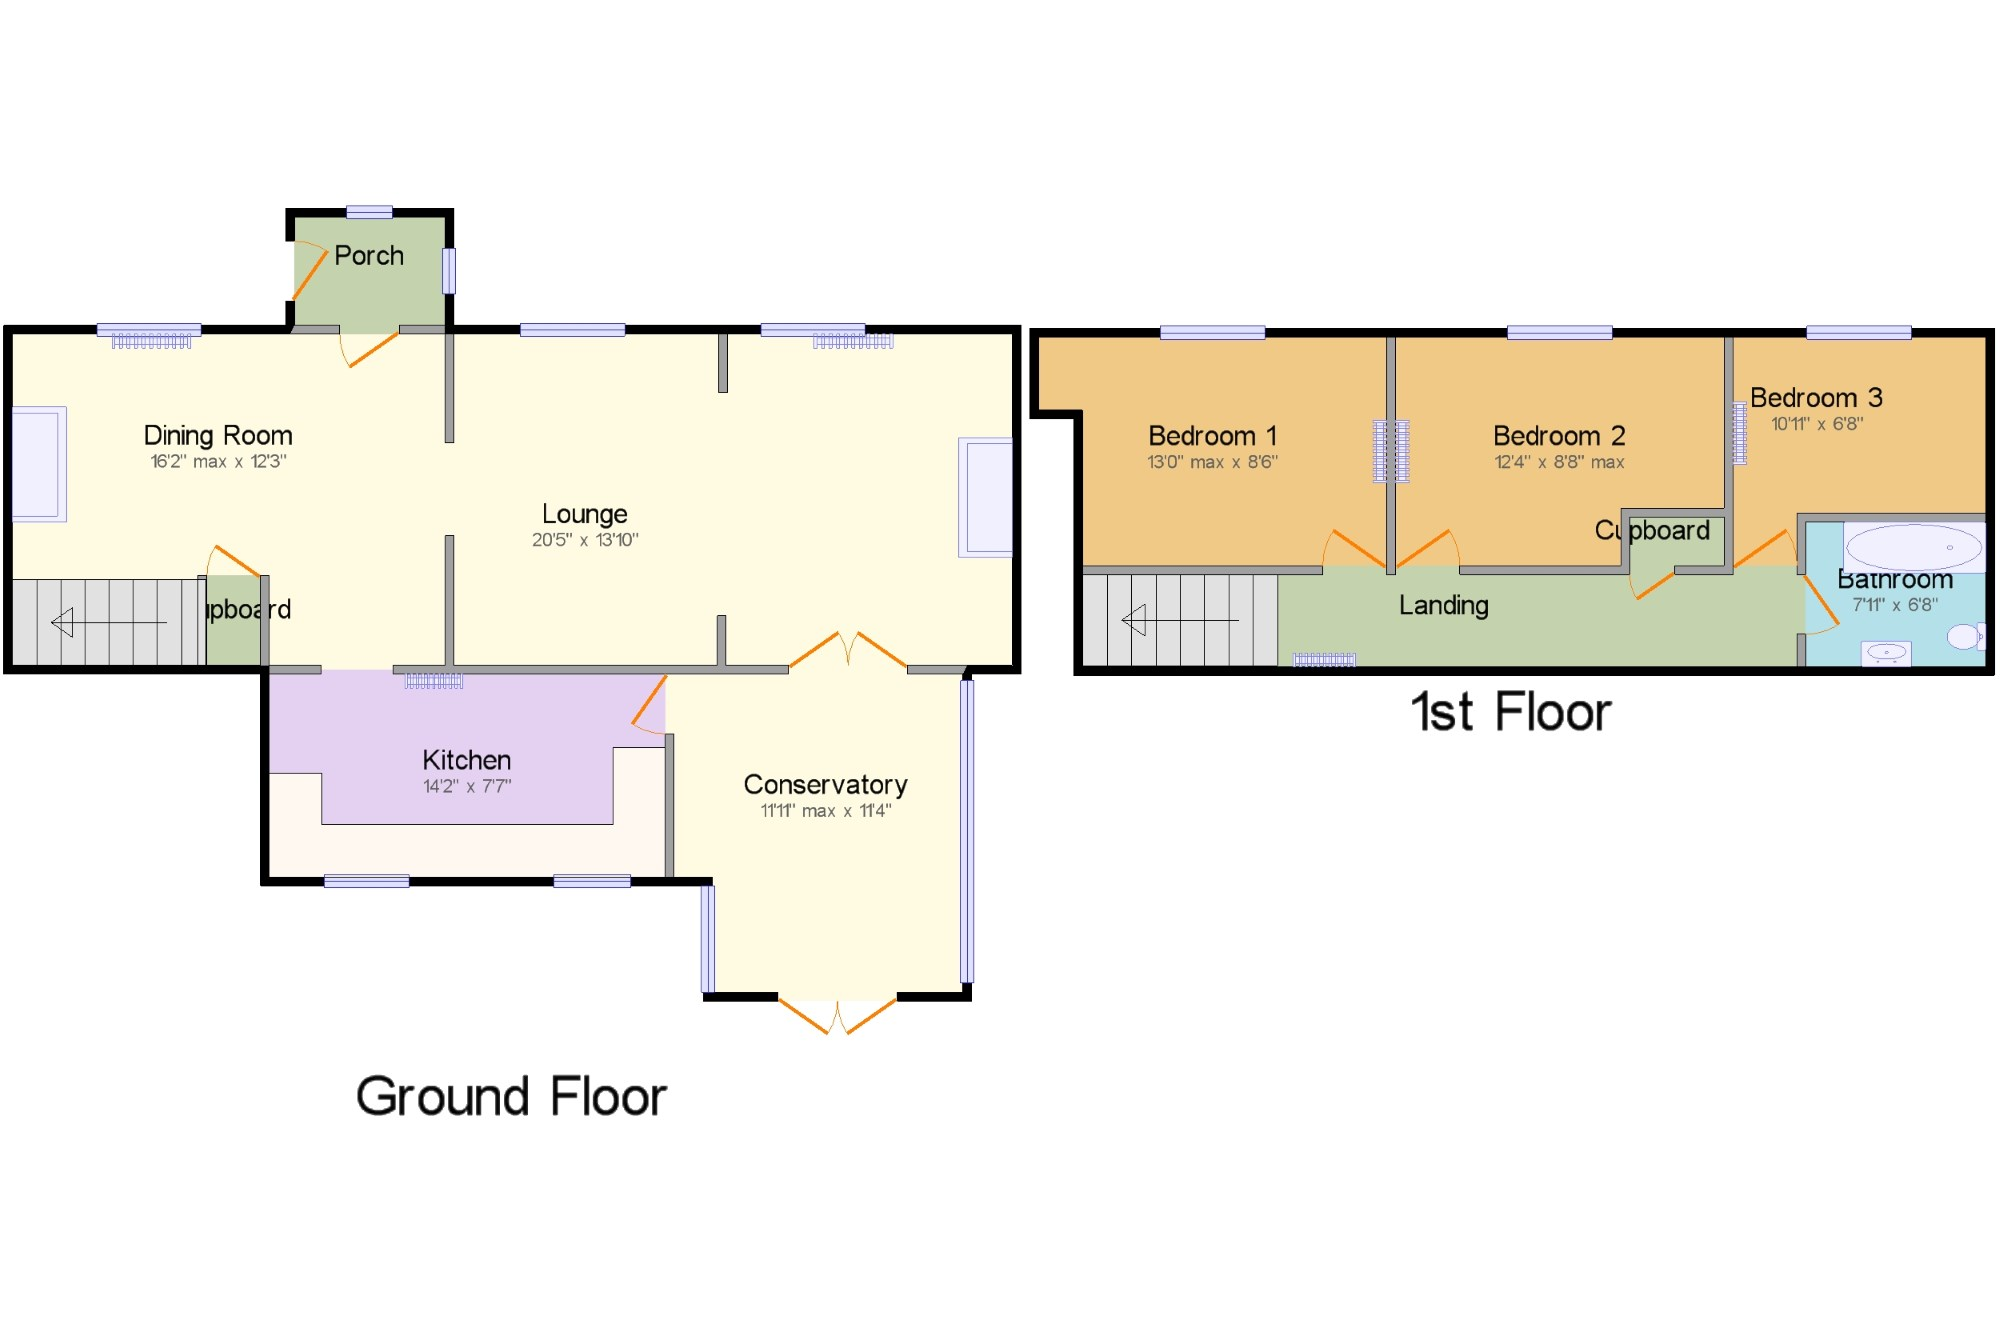 Bedroom detached house for sale in flushing falmouth cornwall - North Carnmarth Redruth Cornwall Tr16 3 Bedroom Semi